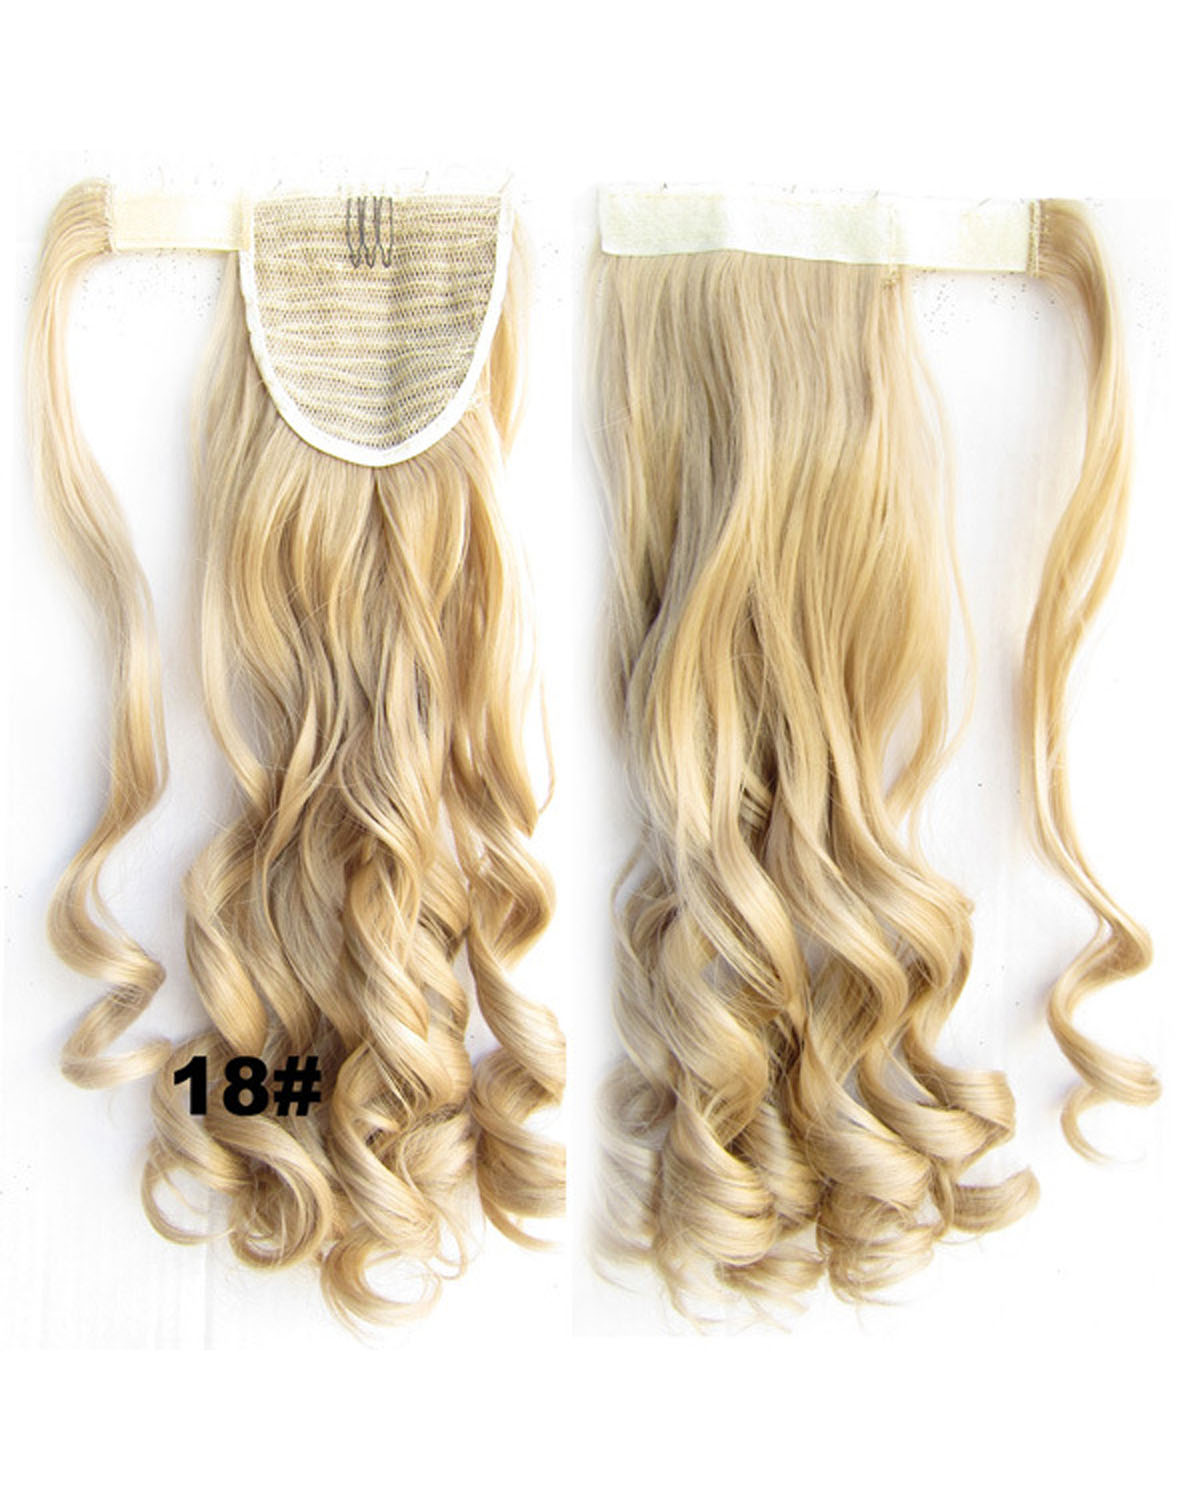 22 Inch Lady Delicate Curly and Long Wrap Around Synthetic Hair Ponytail  18#